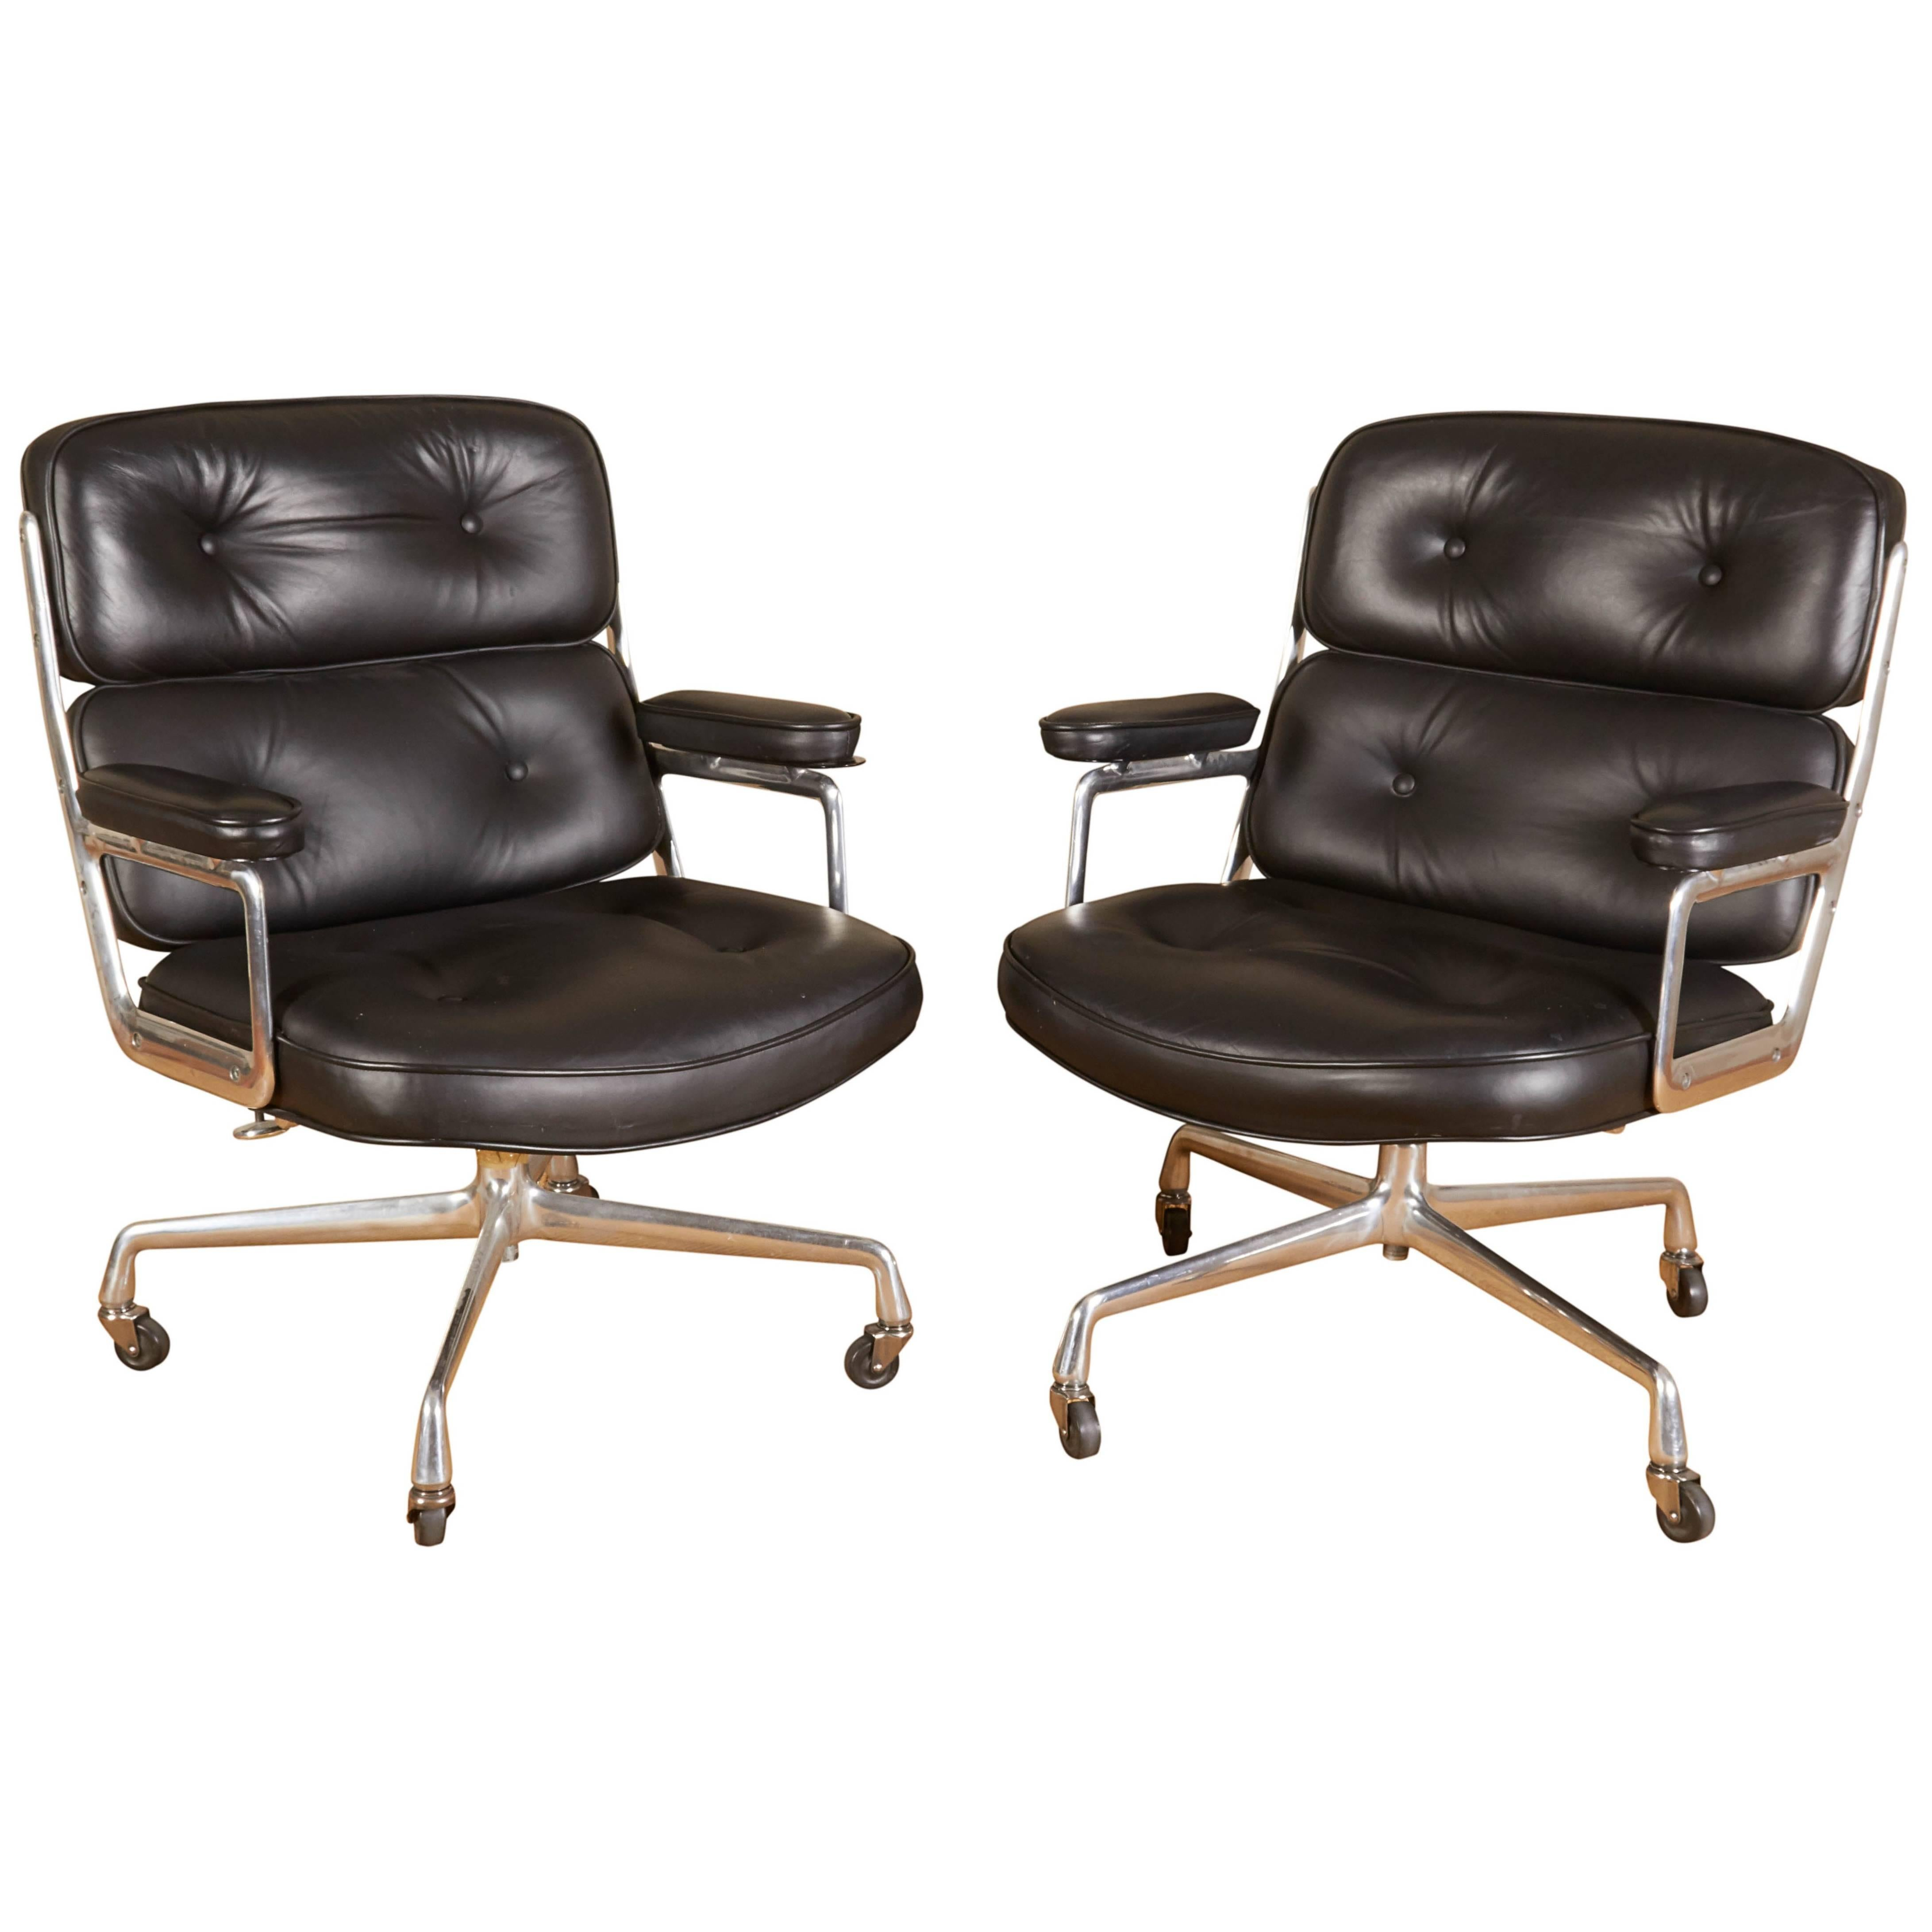 Set Of Two Eames U0027Time Lifeu0027 Executive Chairs For Herman Miller ...